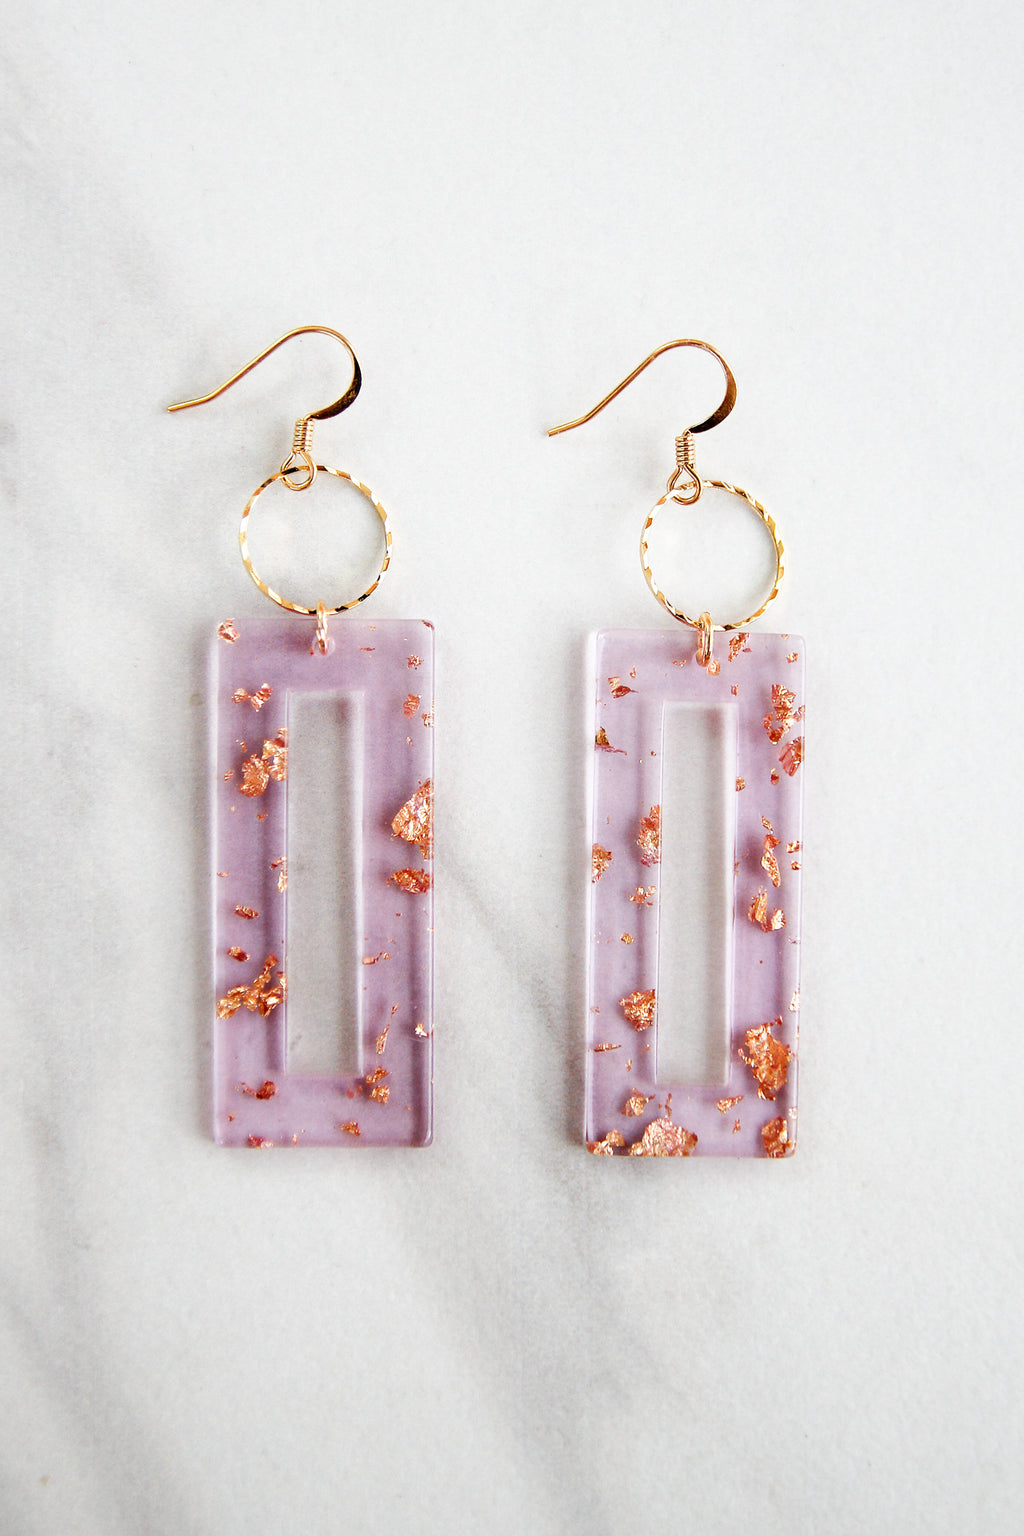 Gold Leaf Acrylic Drop Earrings - Lavender